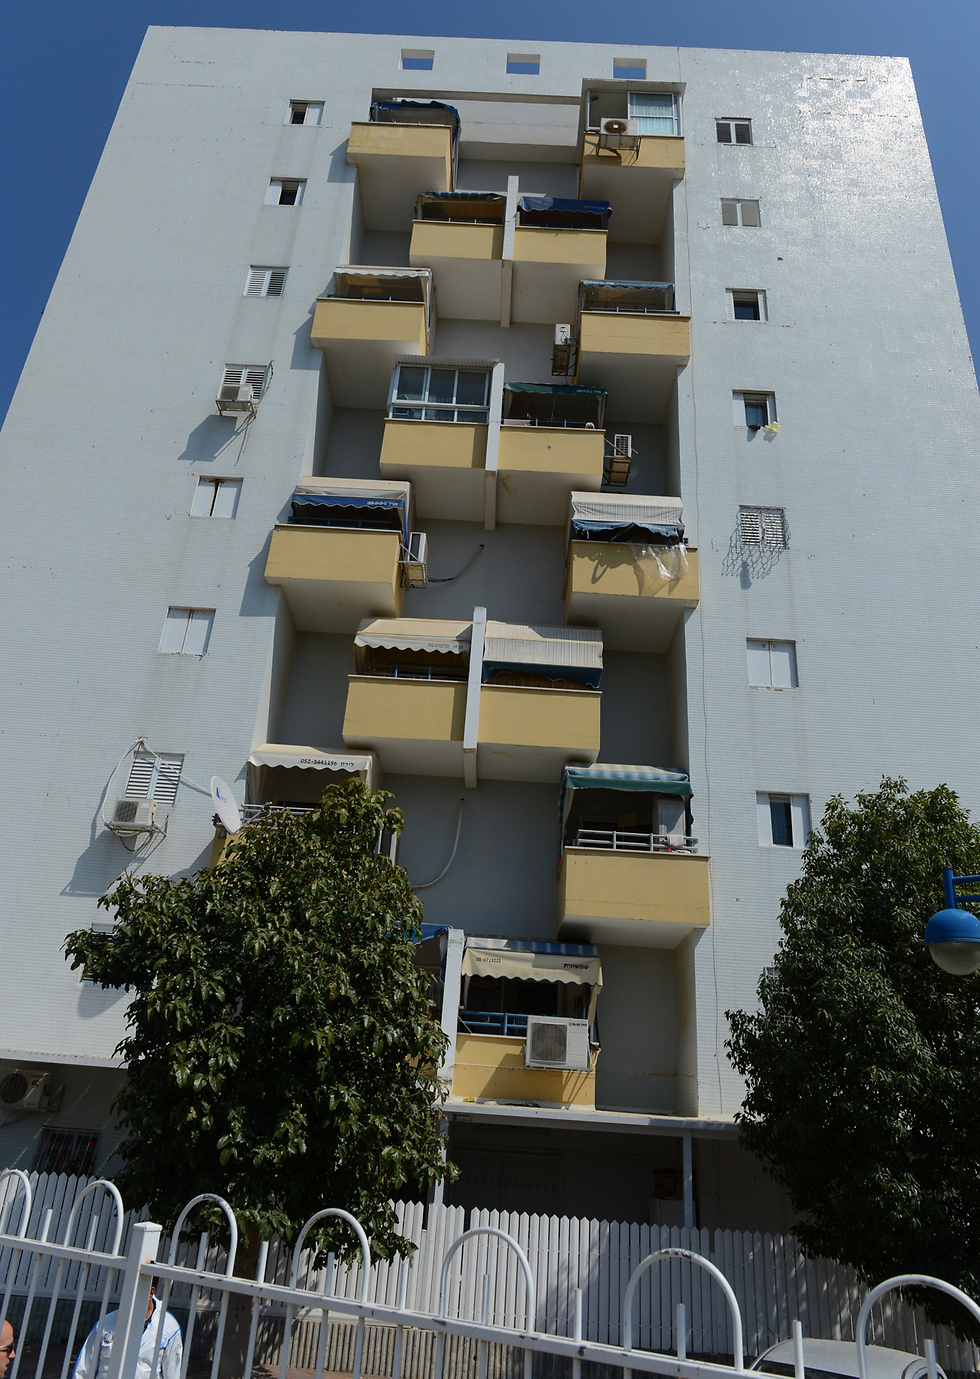 The building where the murder-suicide took place (Photo: Avi Rokach)